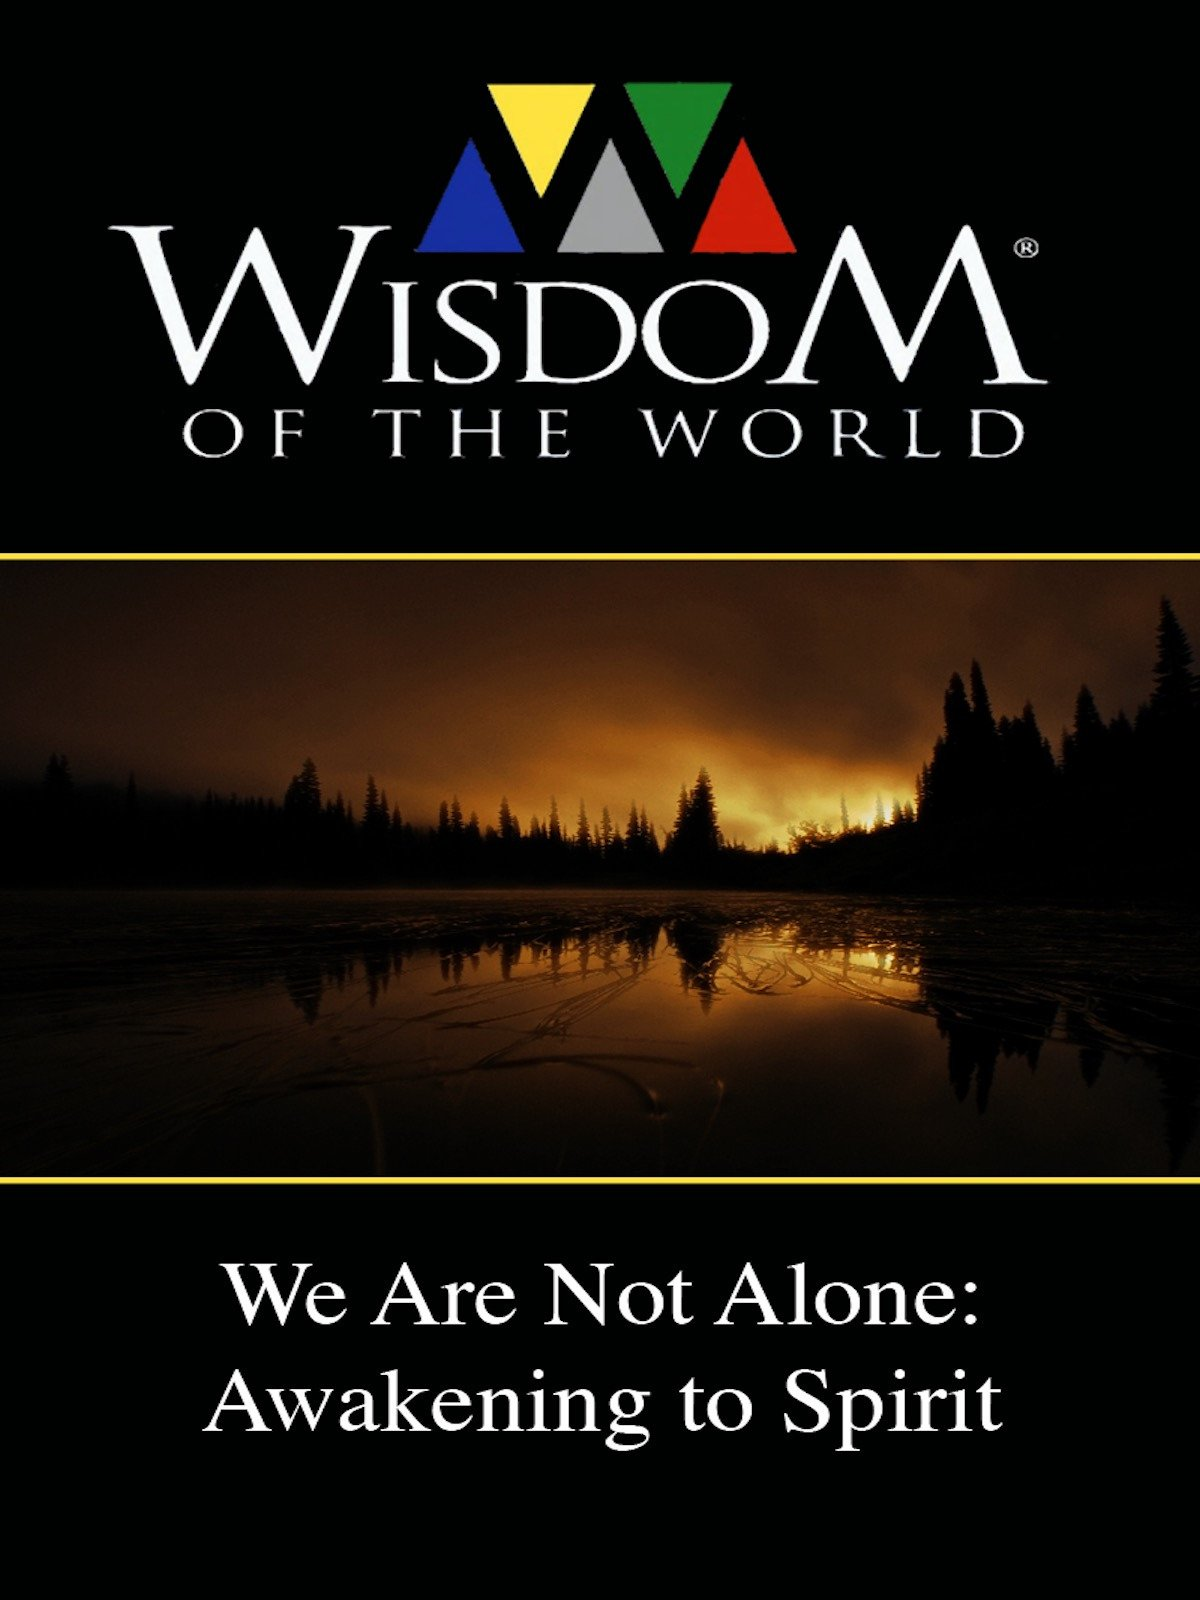 We Are Not Alone: Awakening to Spirit